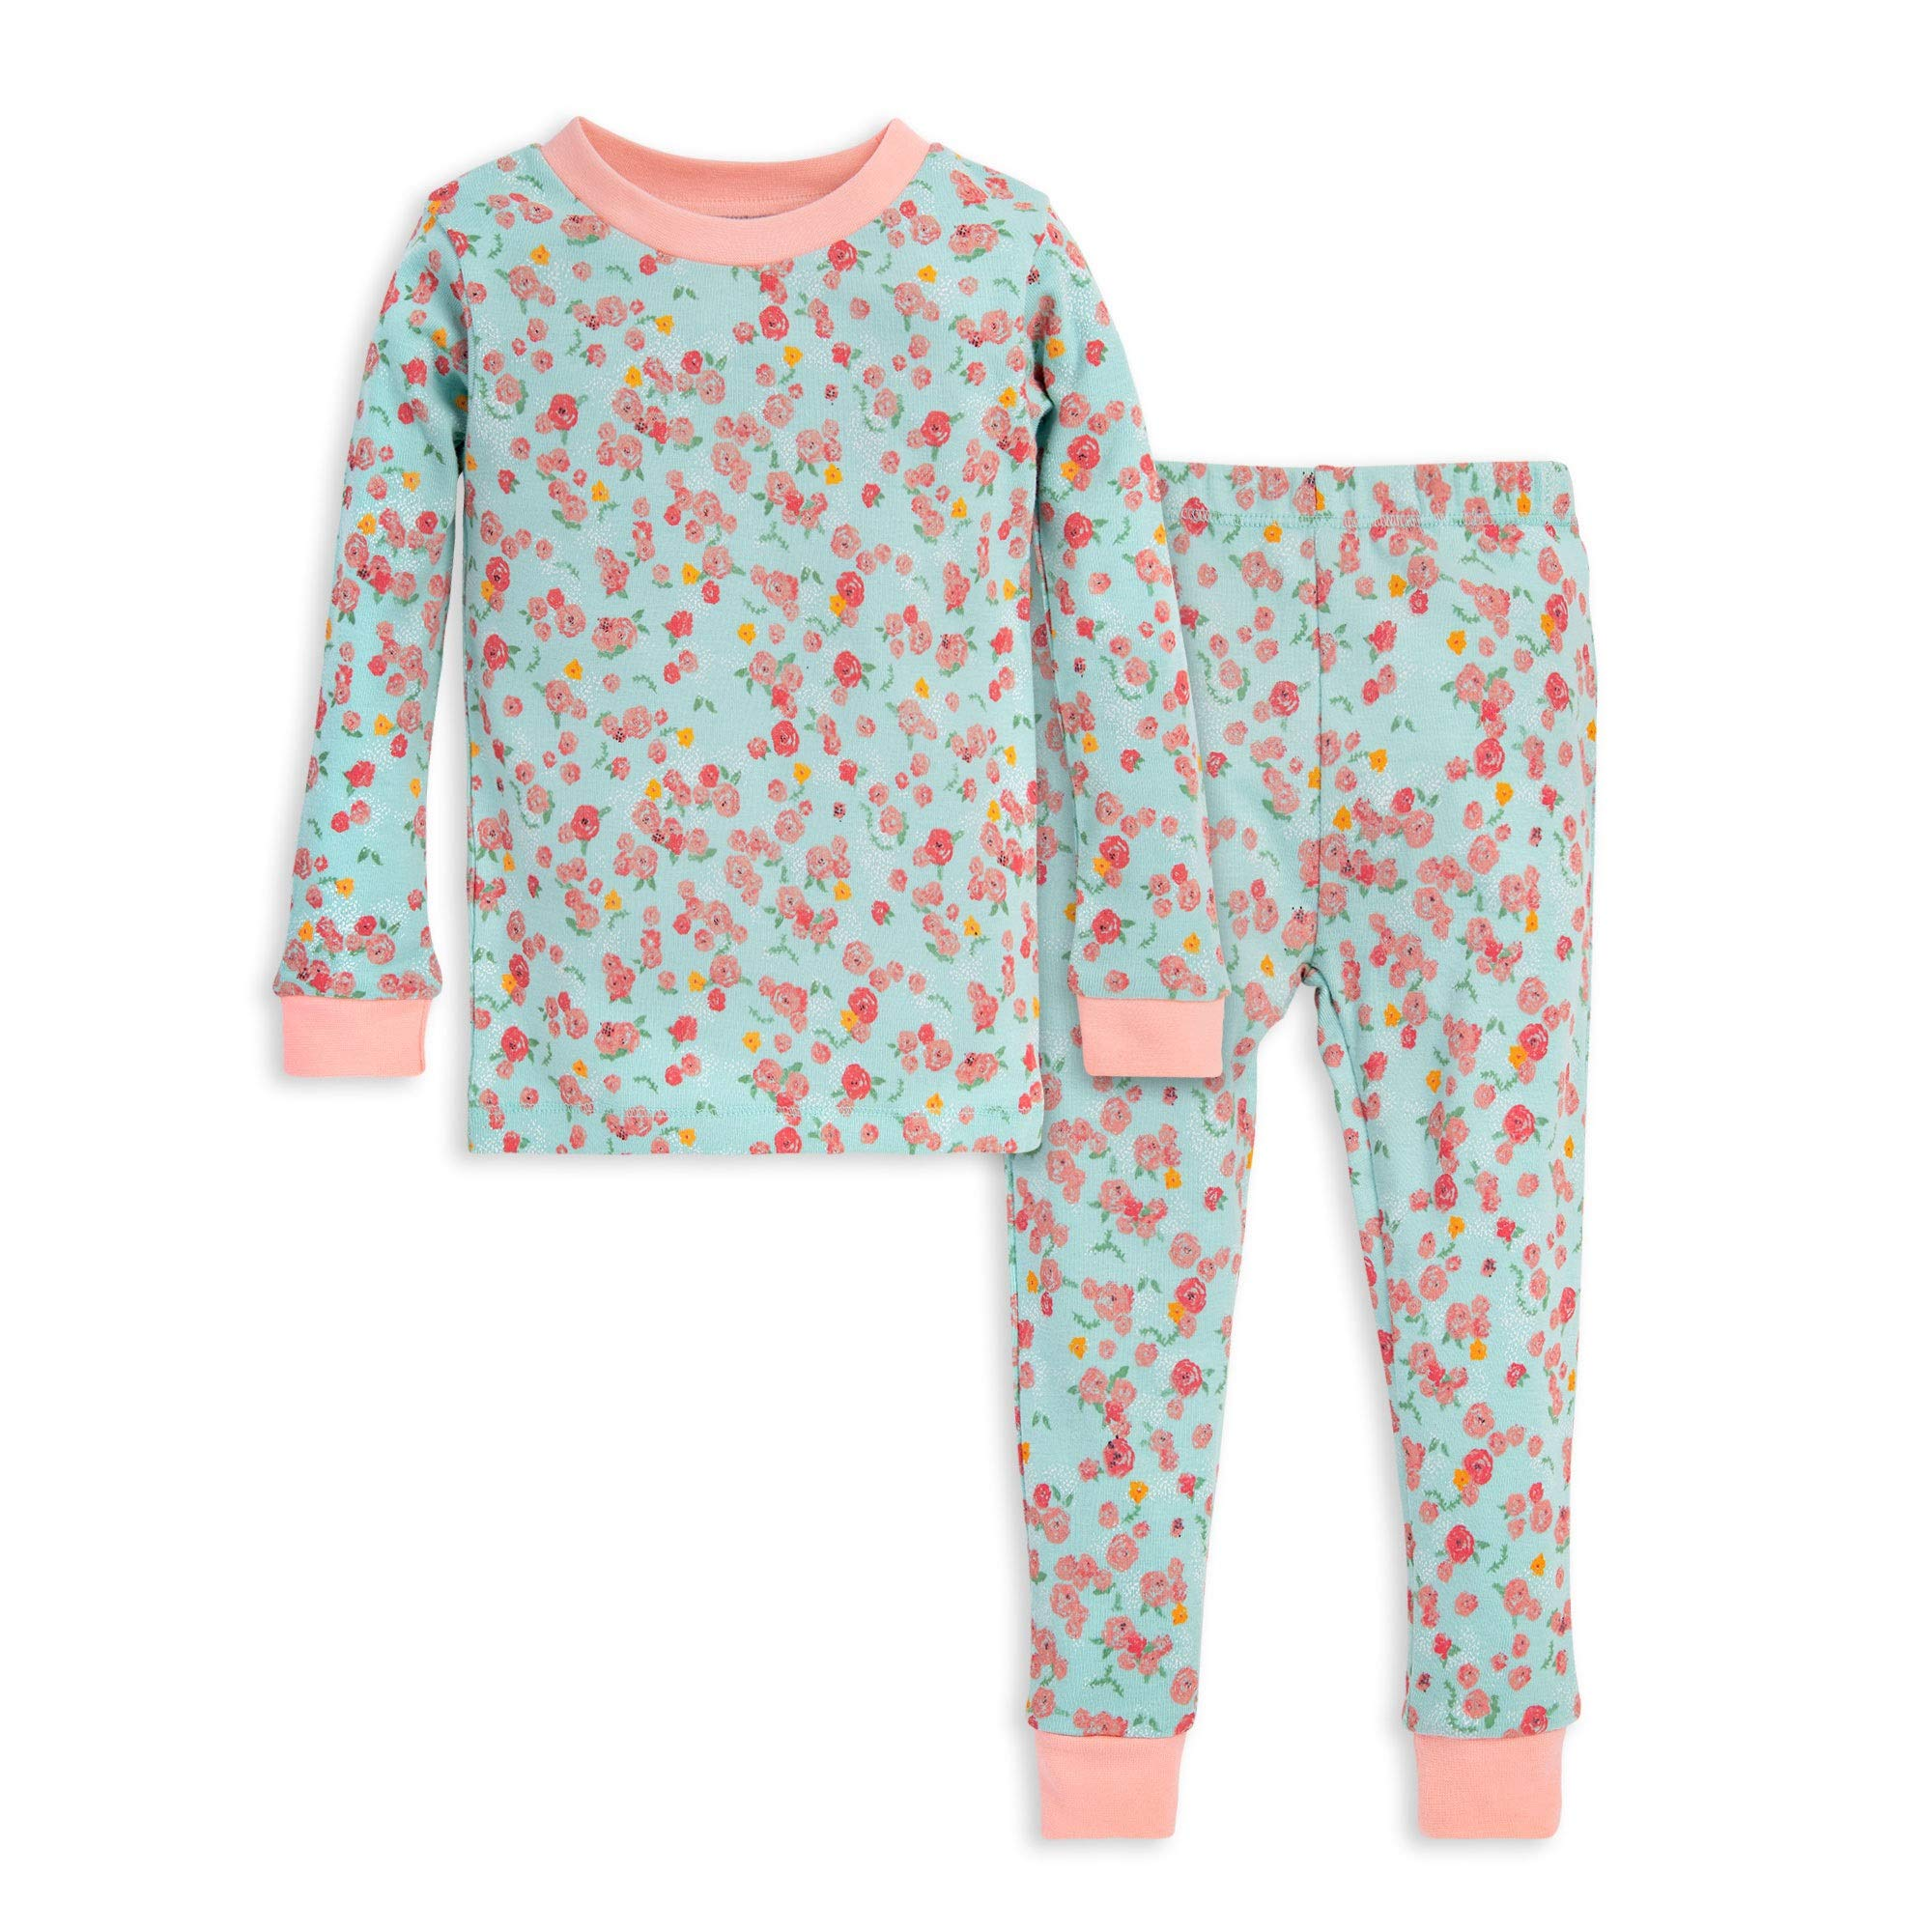 Burt's Bees Baby Baby Girls' Little Kids Pajamas, Tee and Pant 2-Piece PJ Set, 100% Organic Cotton, Blue Ditsy Floral, 5 Years